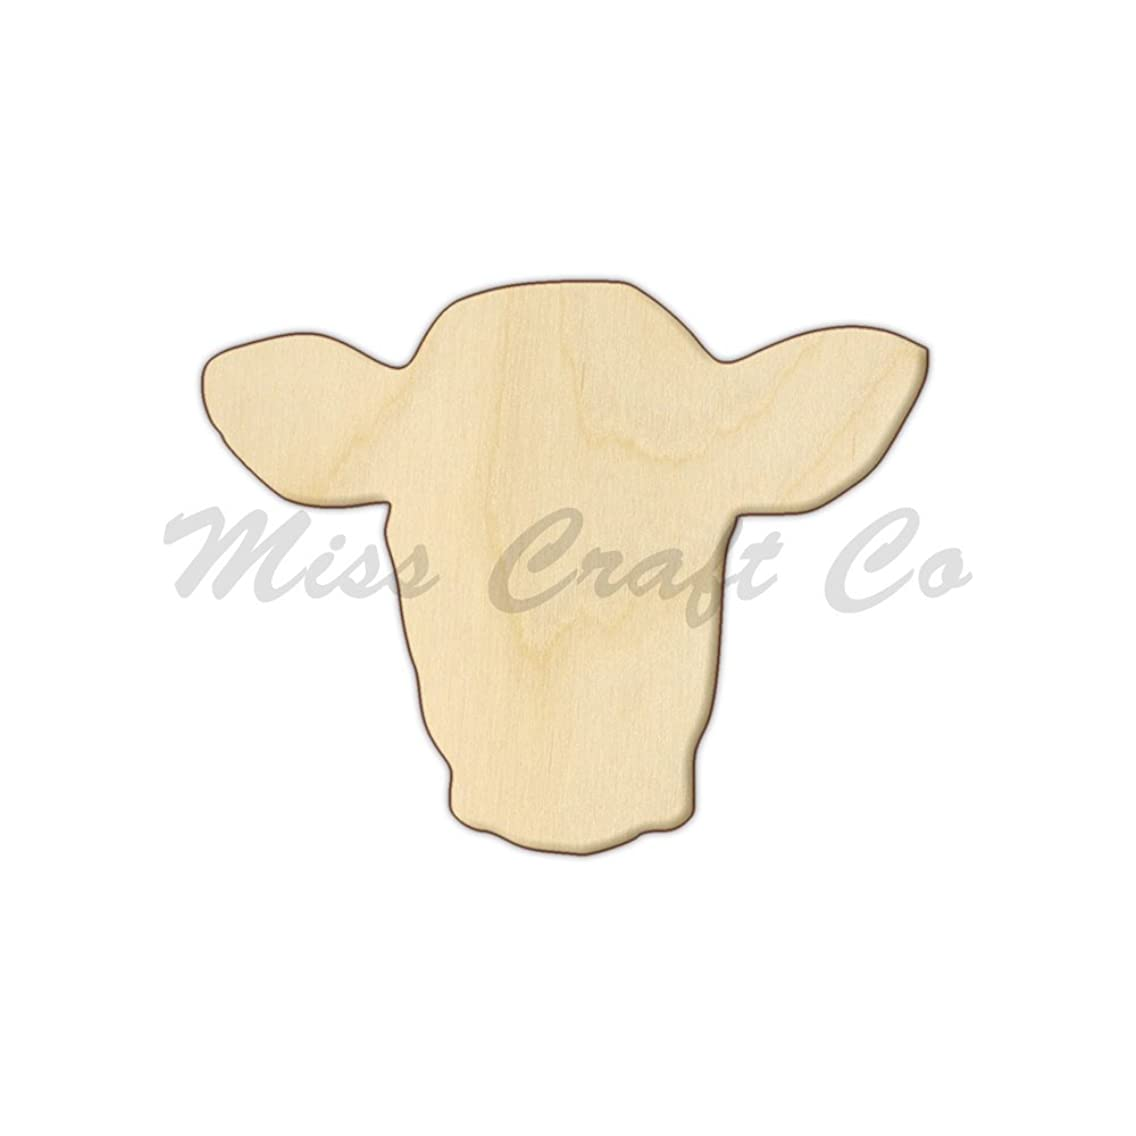 Cow Head Wood Shape Cutout, Wood Craft Shape, Unfinished Wood, DIY Project. All Sizes Available, Small to Big. Made in the USA. 7 X 5.5 INCHES